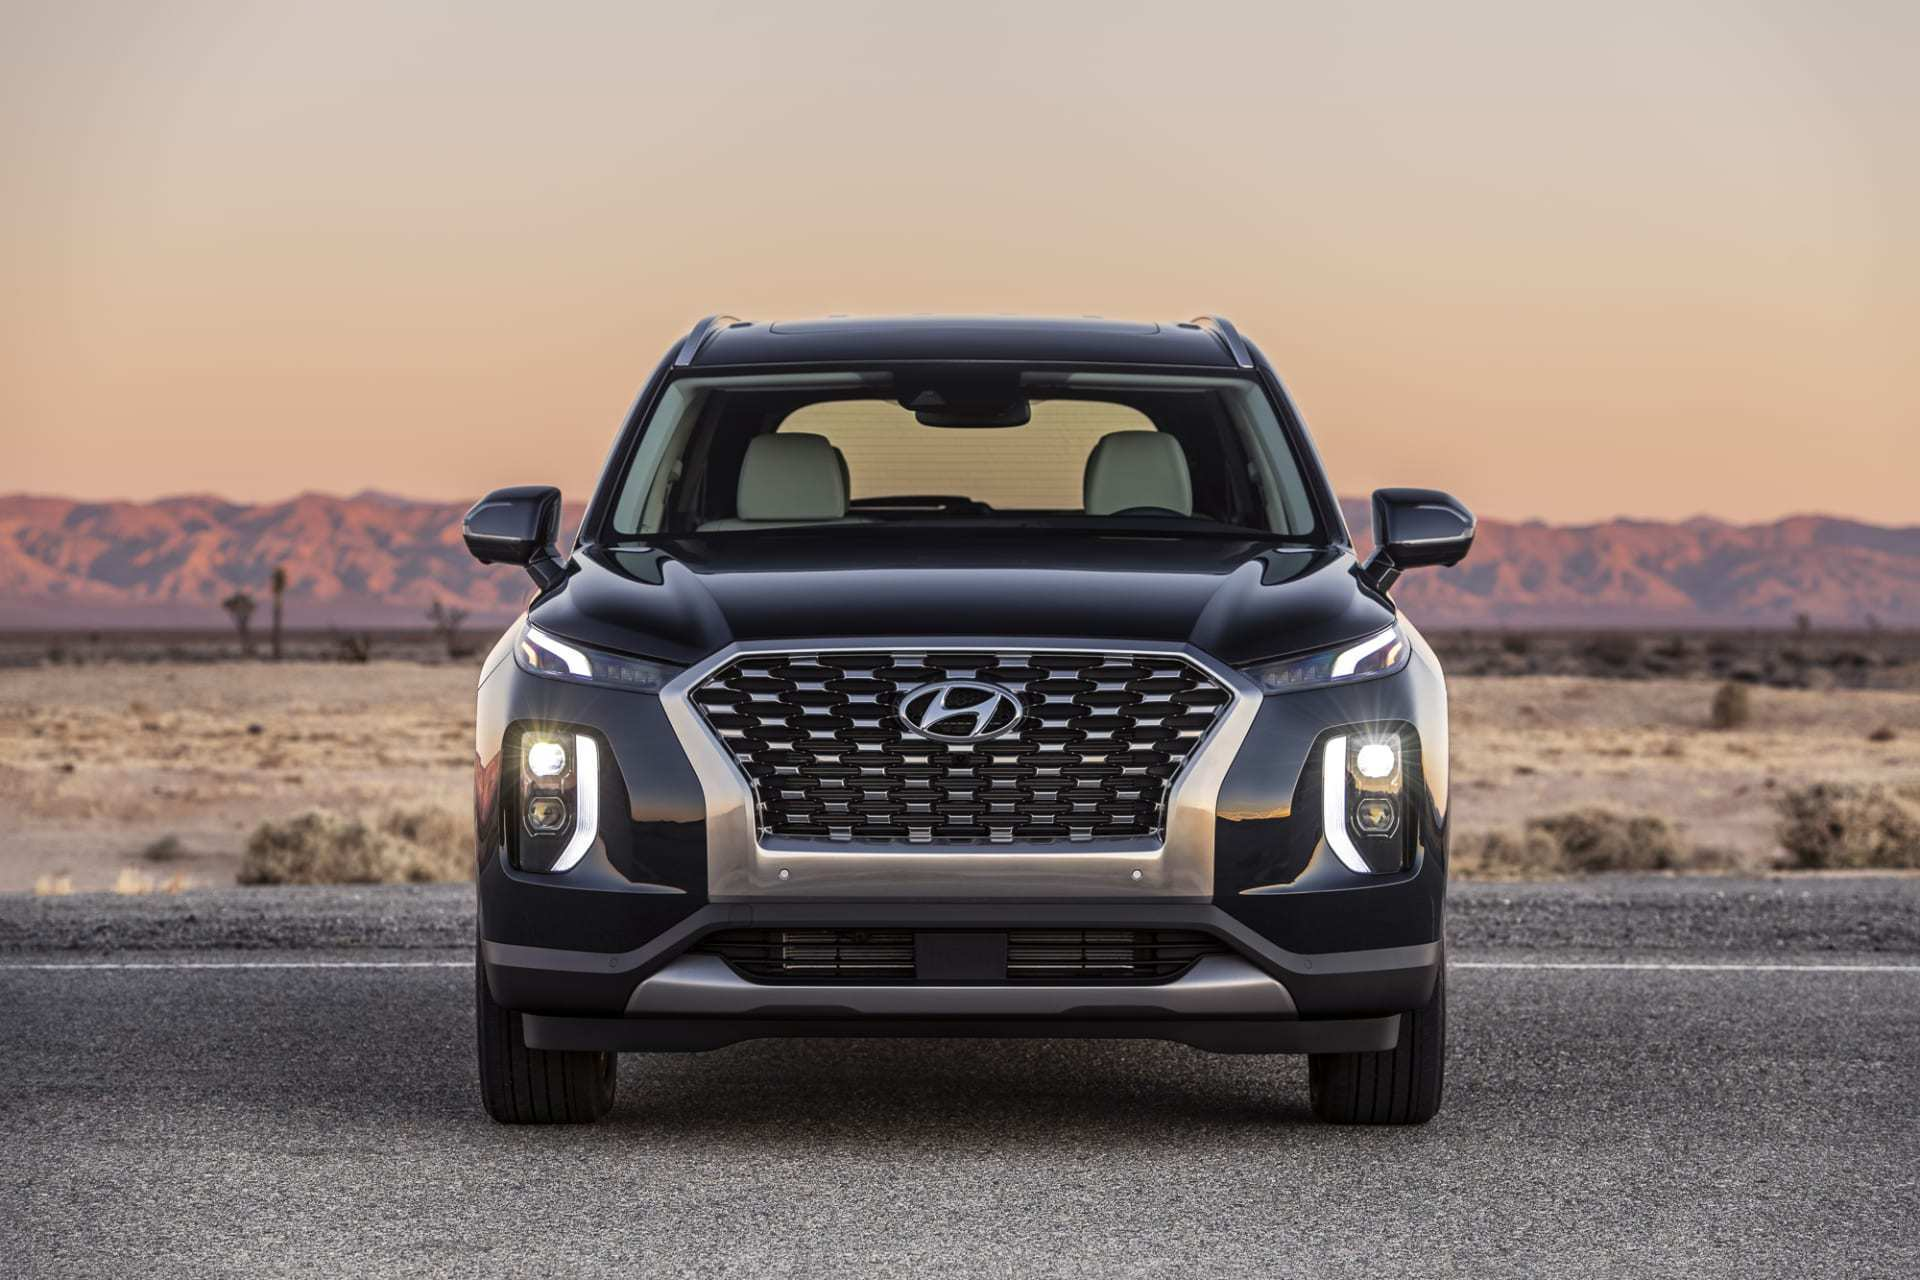 17 All New When Will The 2020 Hyundai Palisade Be Available Overview